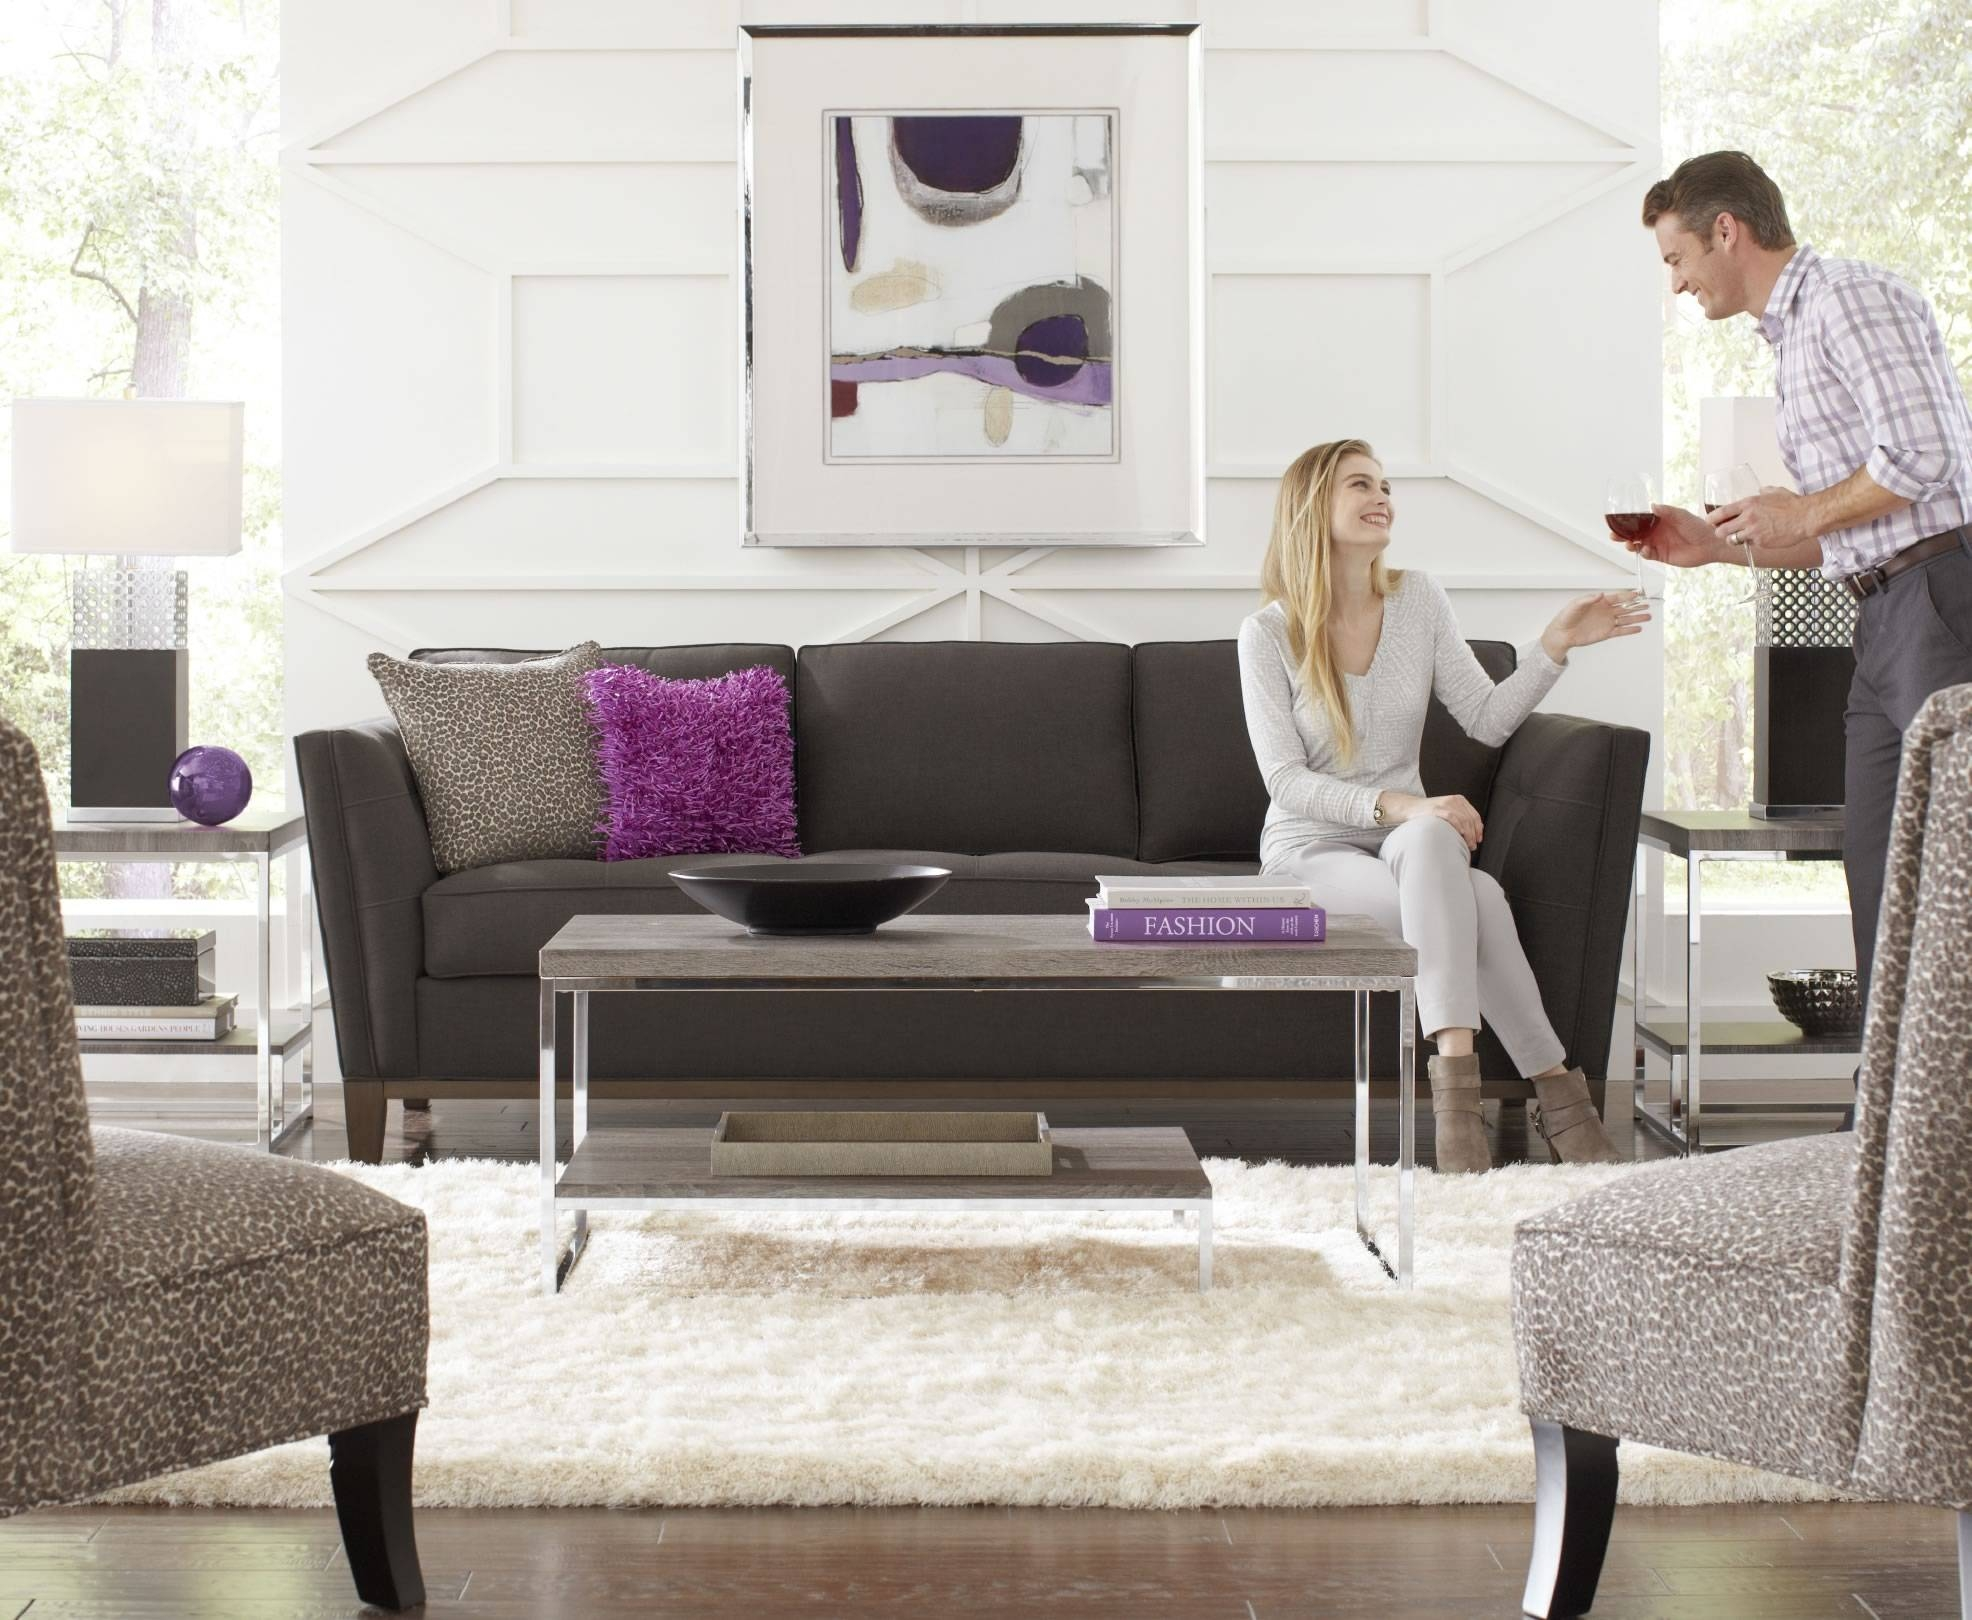 Rooms To Go Discount Furniture Guide: Clearance Sales & More intended for Cindy Crawford Home Sofas (Image 13 of 15)